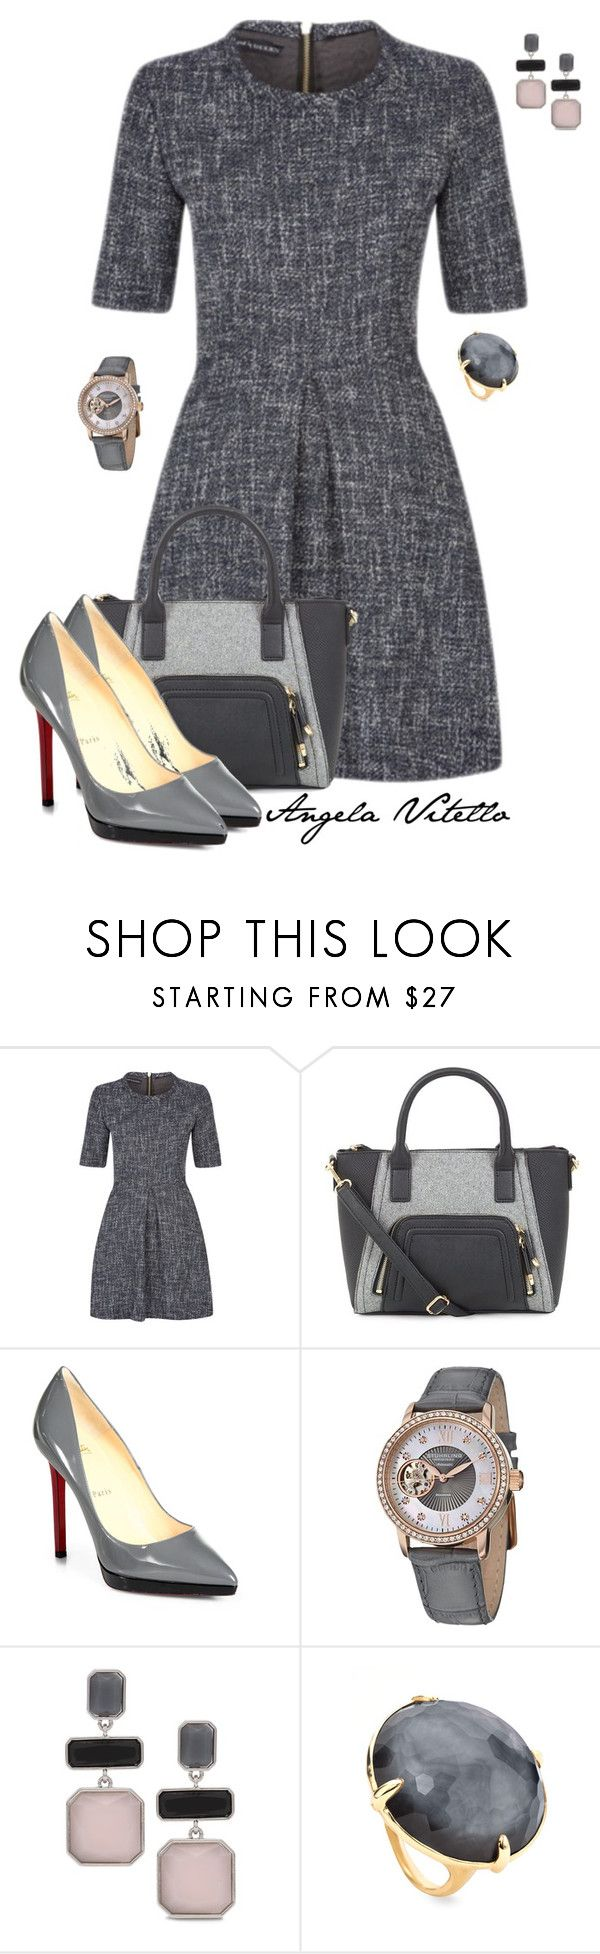 """Untitled #612"" by angela-vitello on Polyvore featuring Christian Louboutin, Stührling, Chico's and Ippolita"